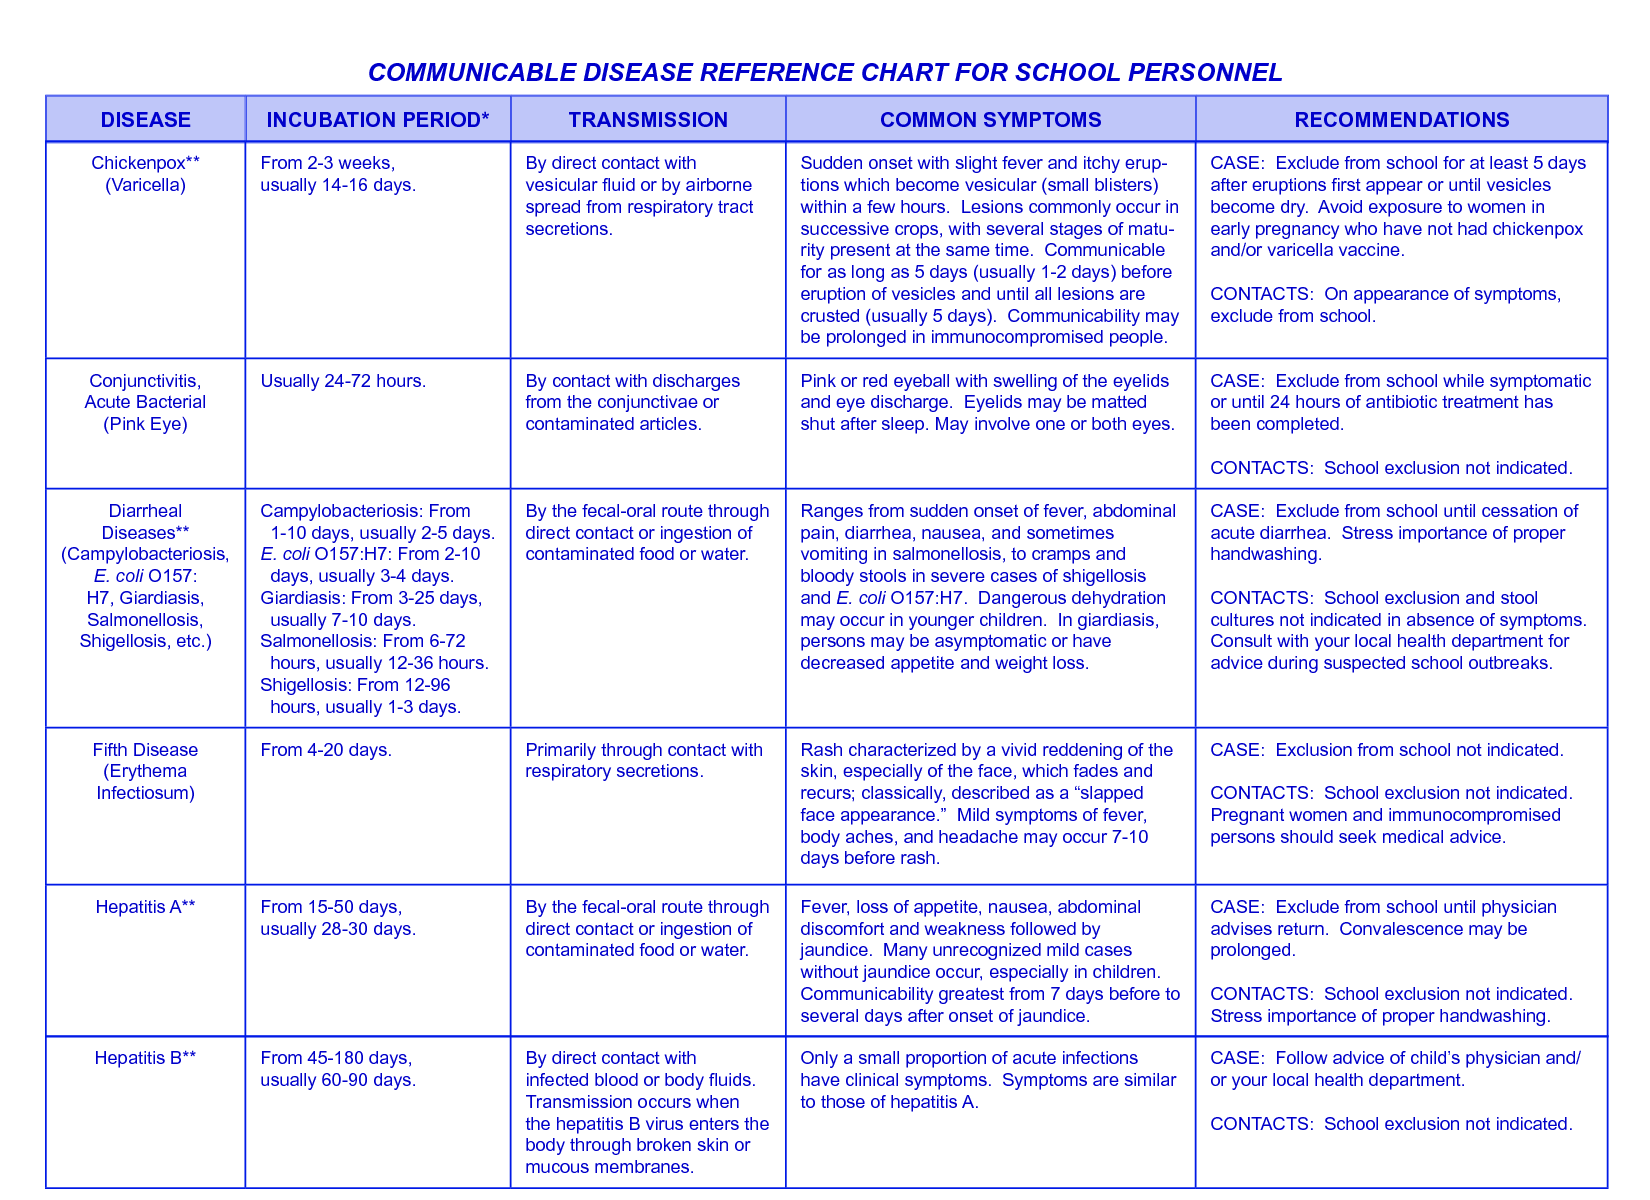 COMMUNICABLE DISEASE REFERENCE CHART FOR SCHOOL PERSONNEL ...